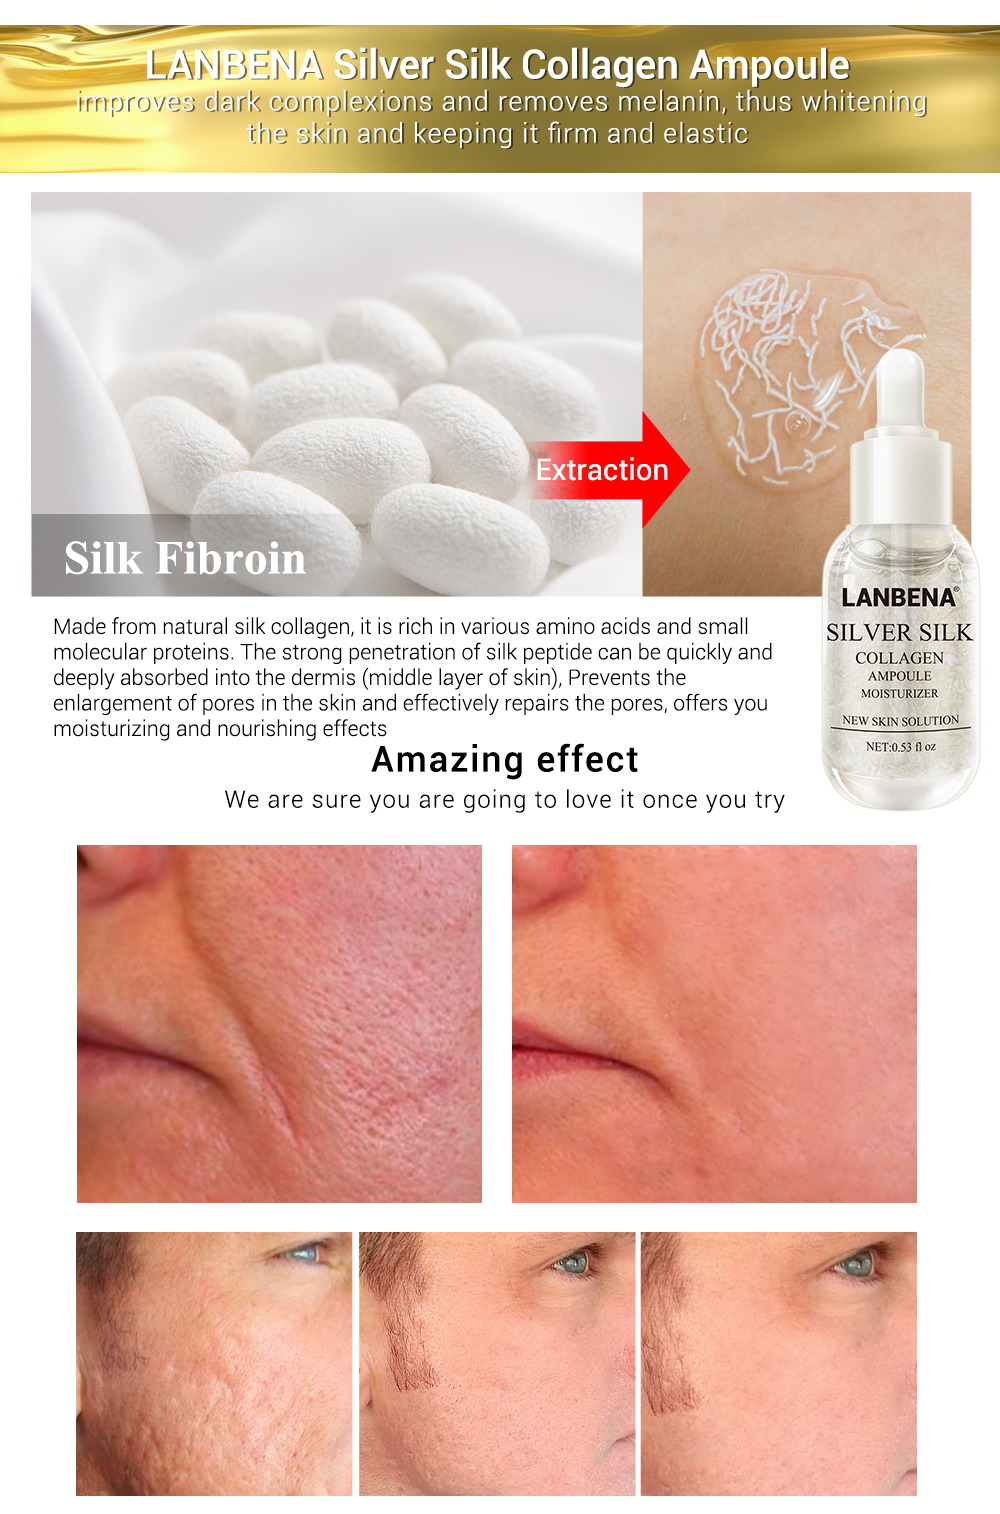 LANBENA Skin Care Face Serum Vitamina C Whitening Serum Facial Essential Oil 24k Gold Serum Essences Hyaluronic Acid Face Care